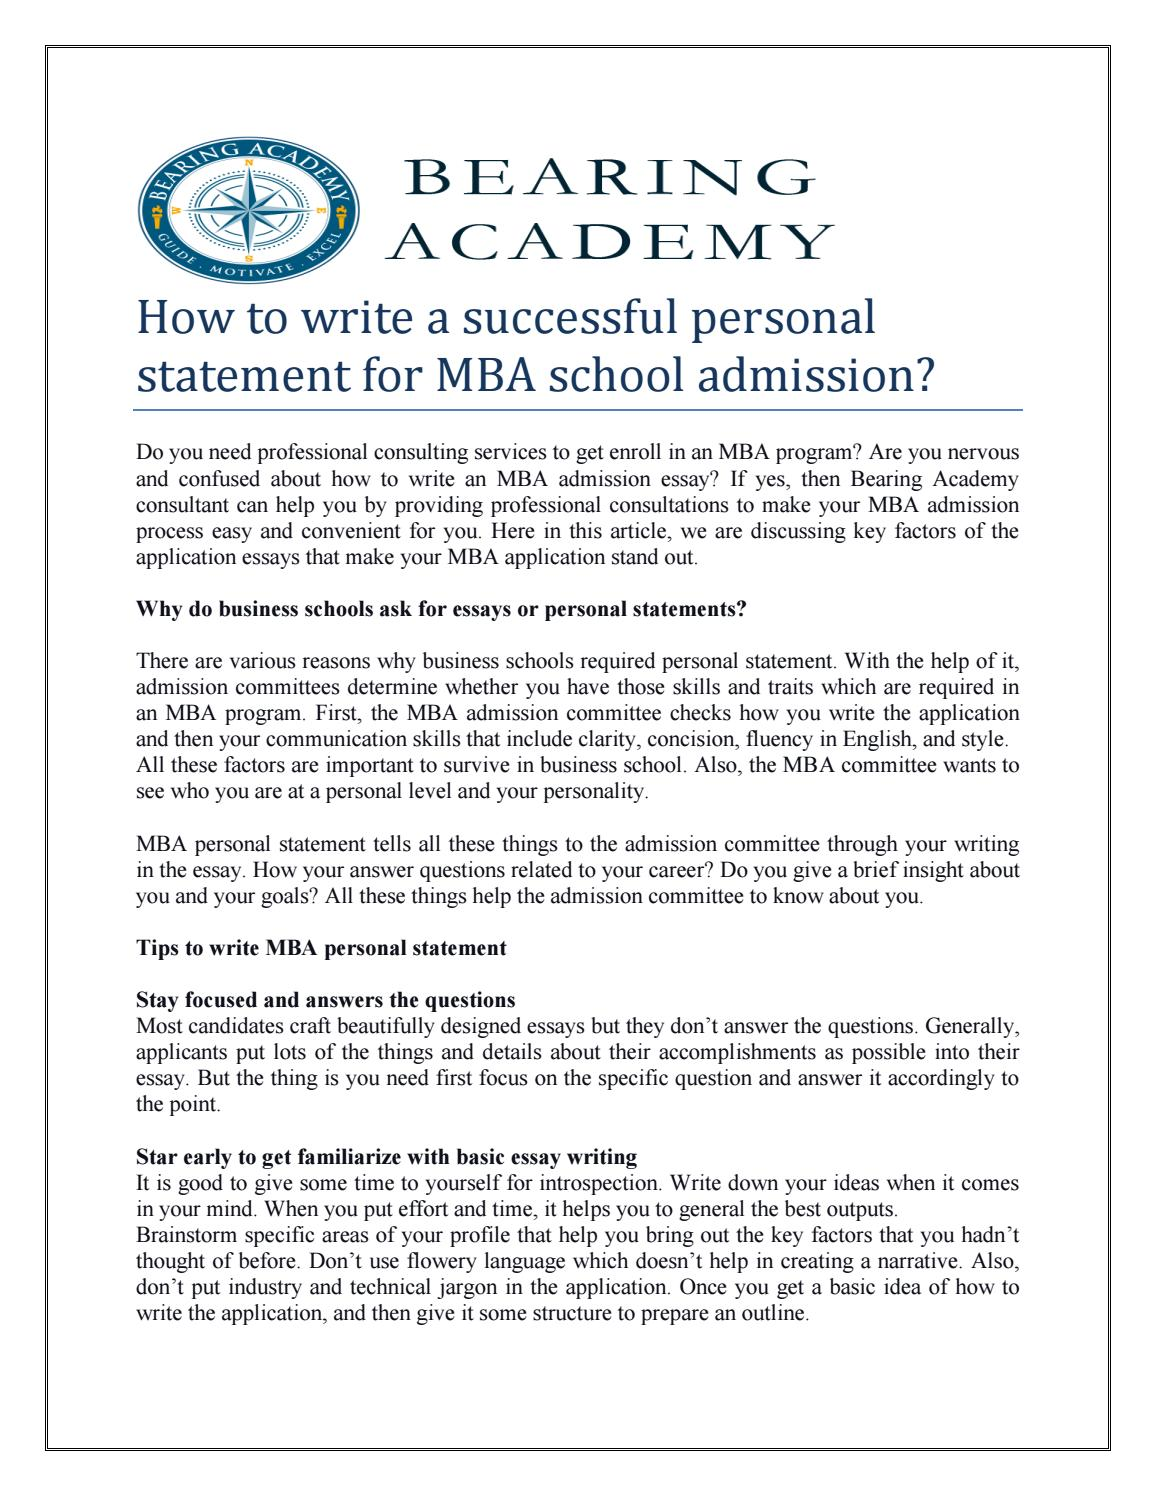 Professional personal statement writer site for mba books review site